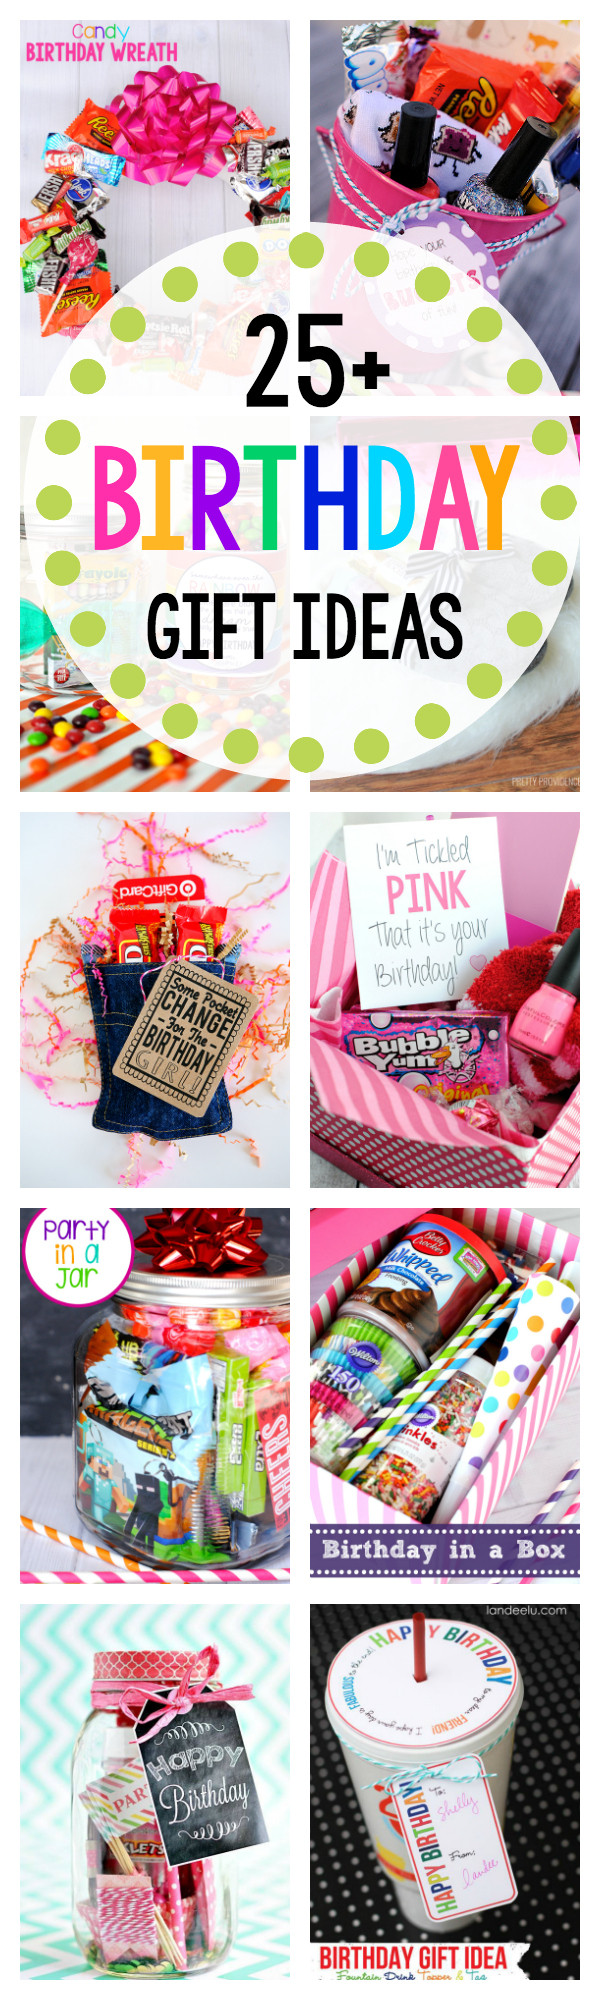 Birthday Present Ideas  Fun Birthday Gift Ideas for Friends Crazy Little Projects